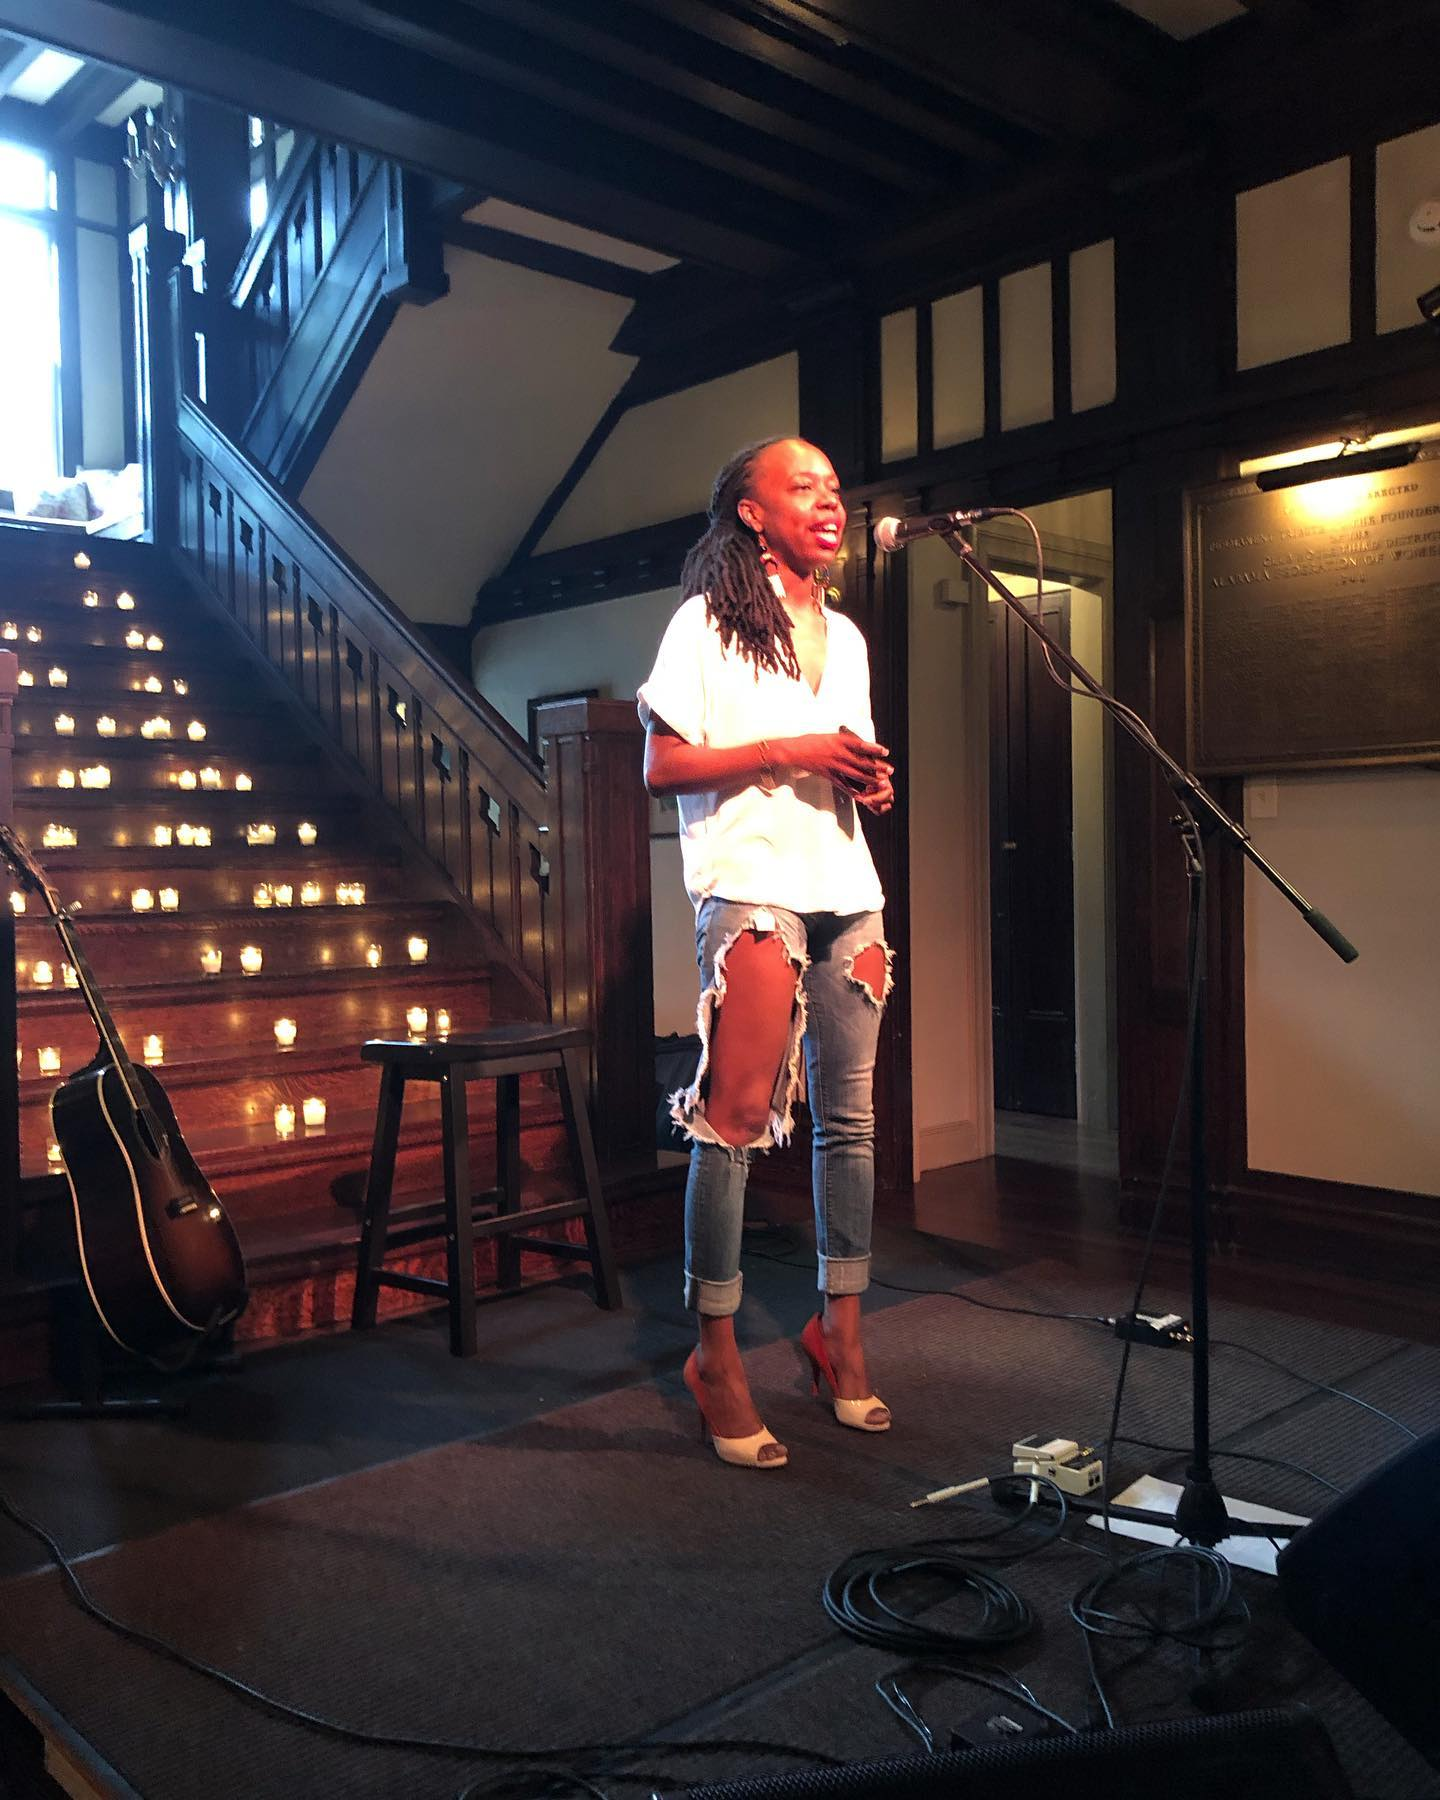 Deidre Clark speaks solo on stage and gives a beautiful word at the Clubhouse on Highland in Birmingham